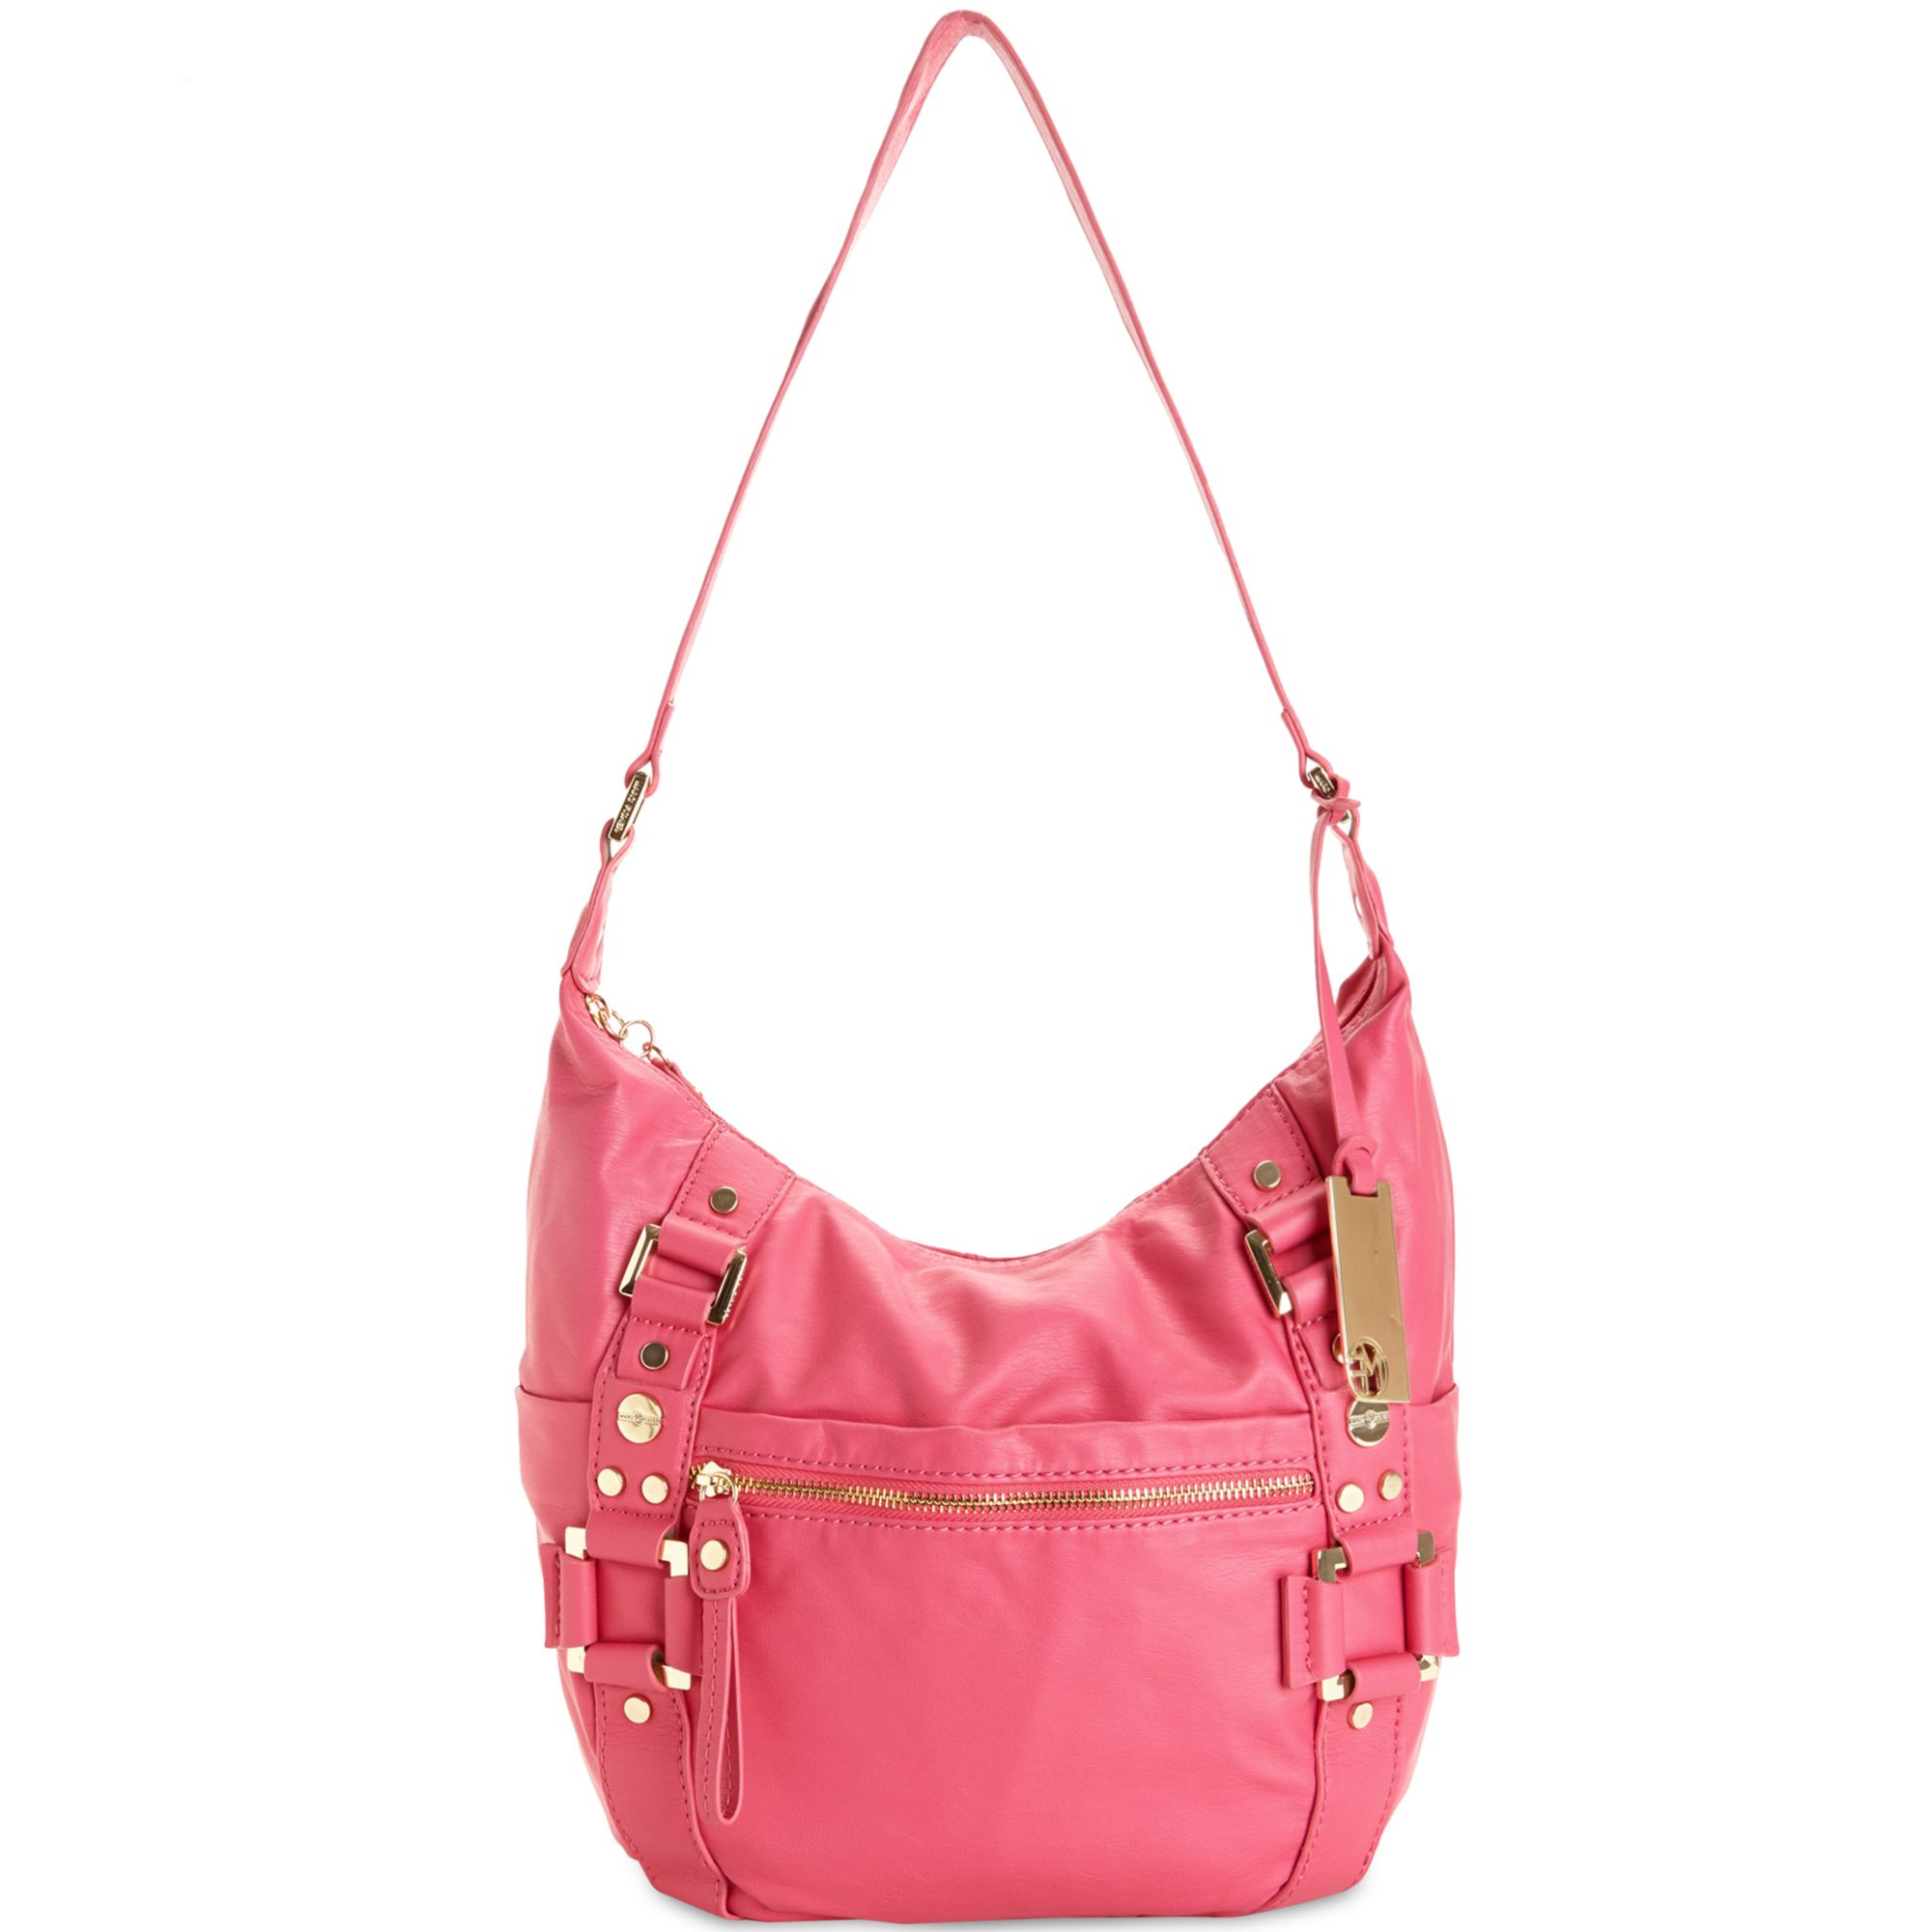 Lyst - Marc Fisher Trunk Show Hobo in Pink d3d0813a97591